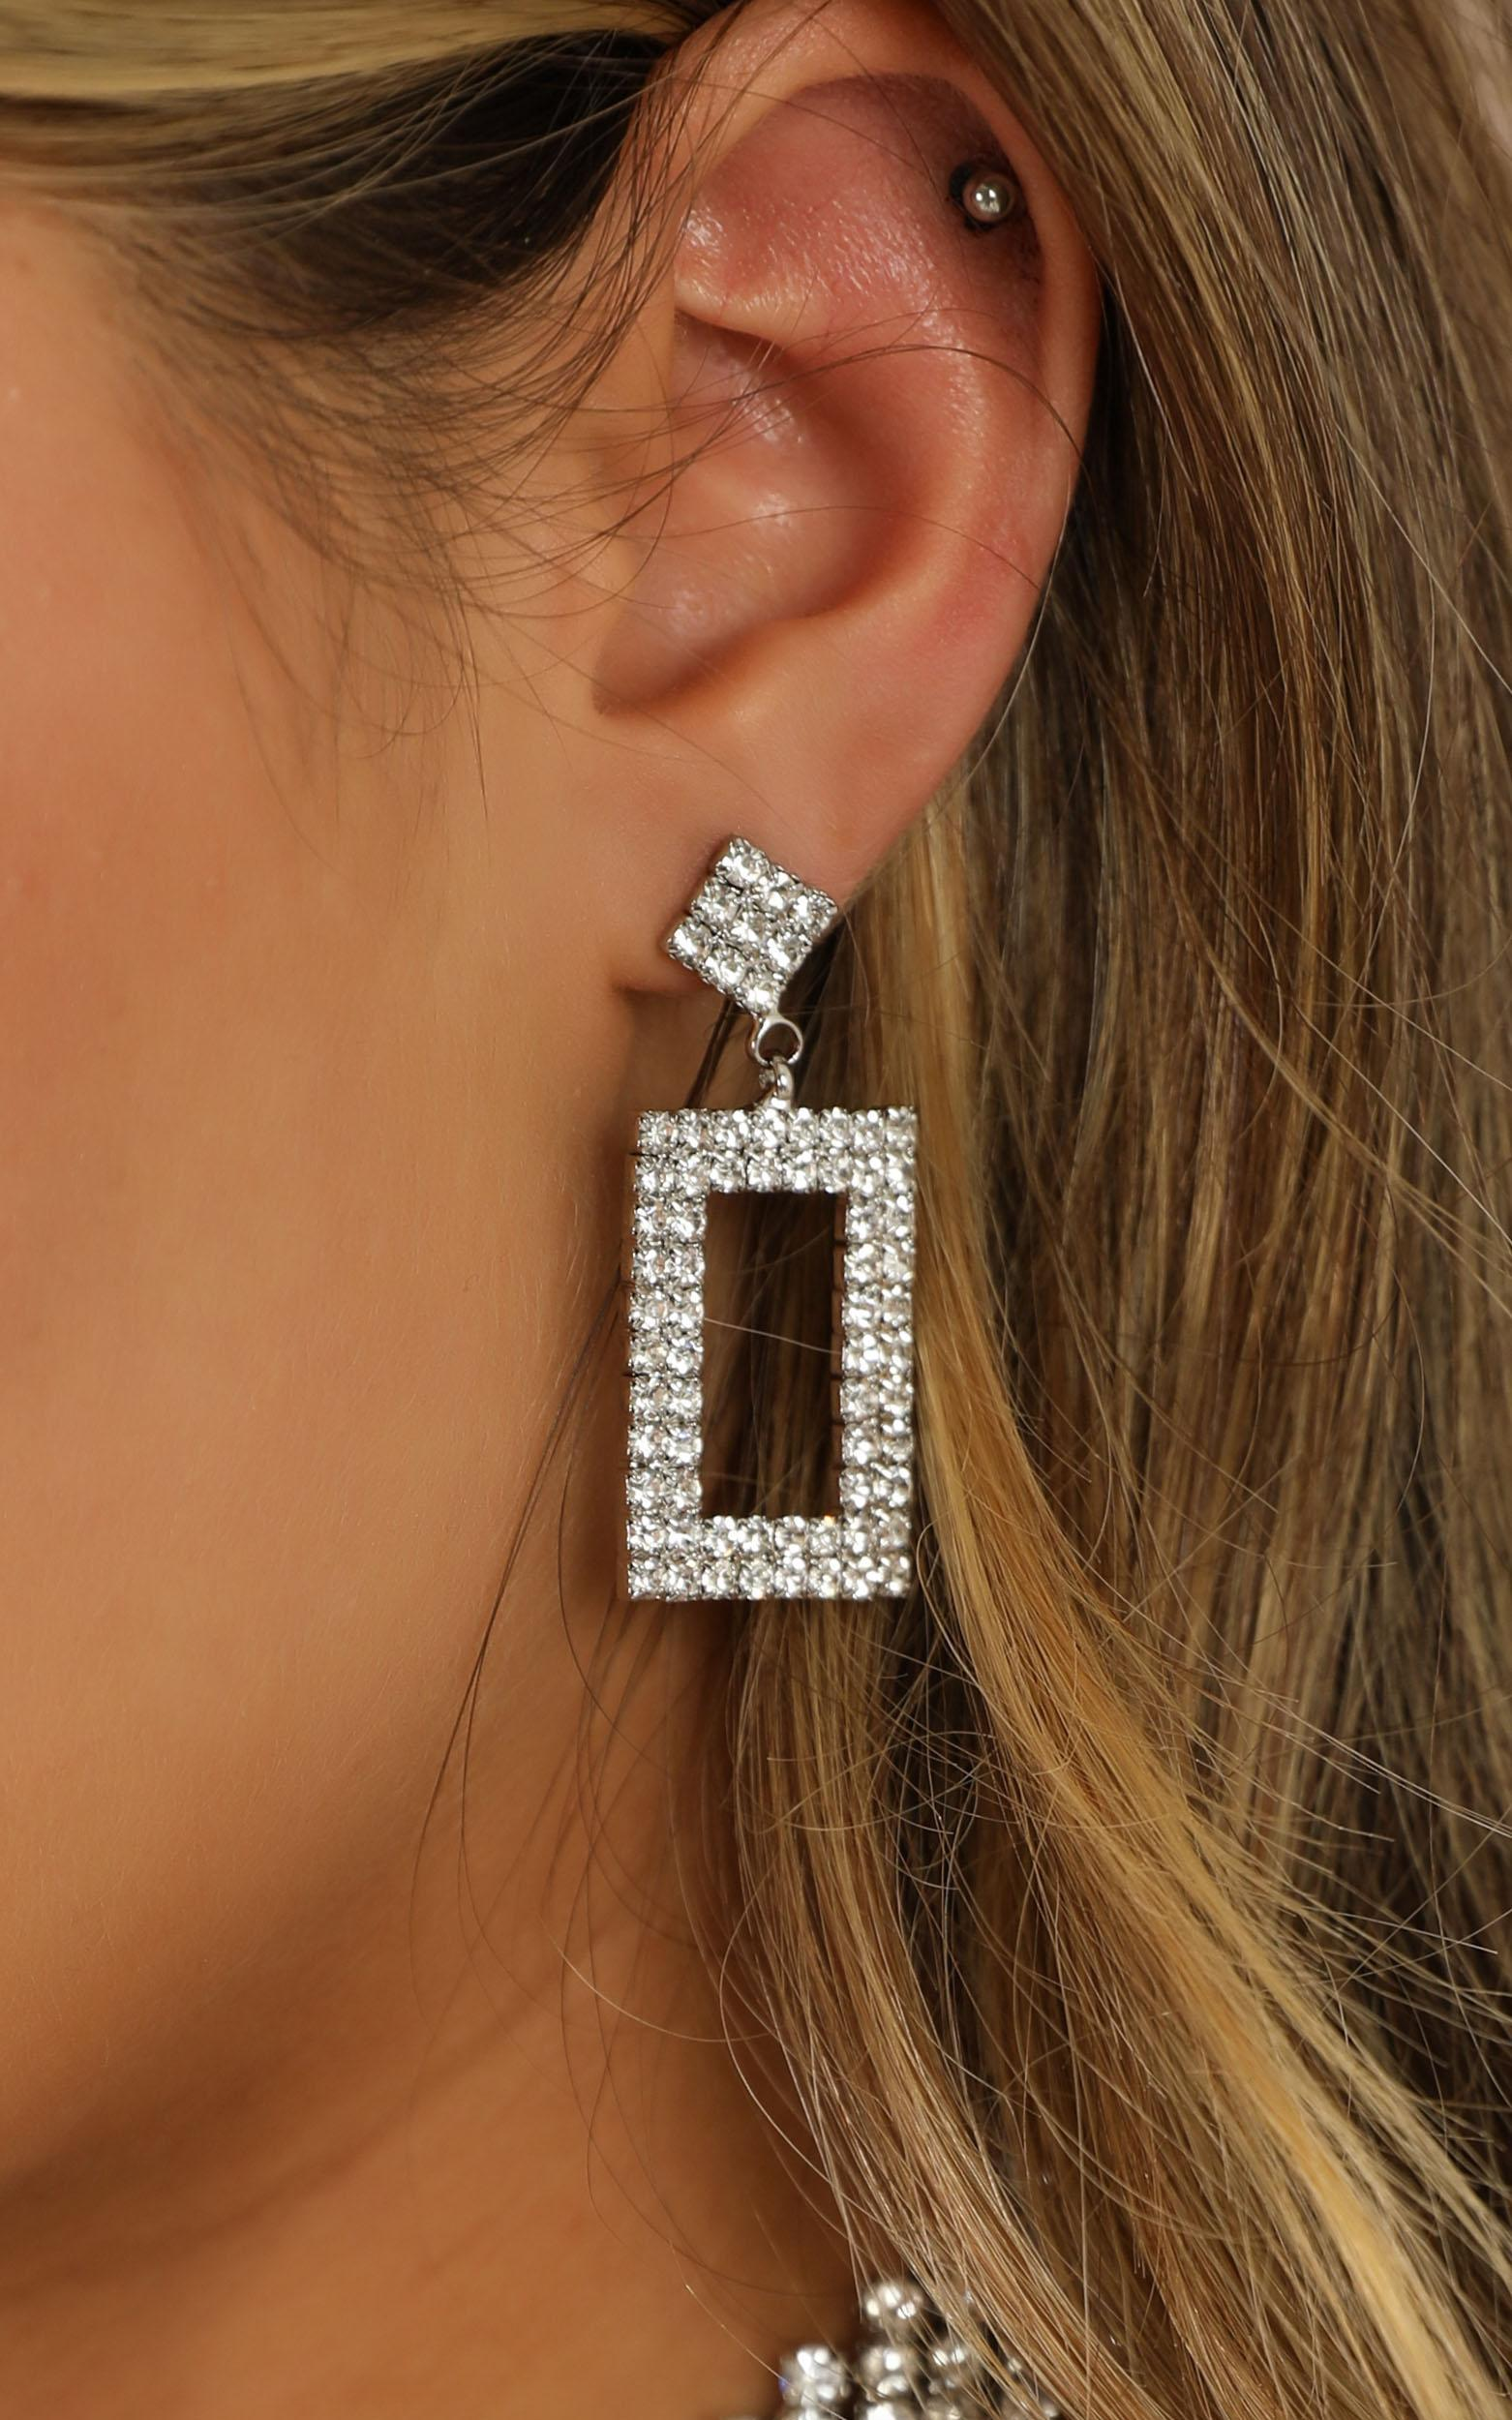 Back To Life Earrings In Silver, , hi-res image number null